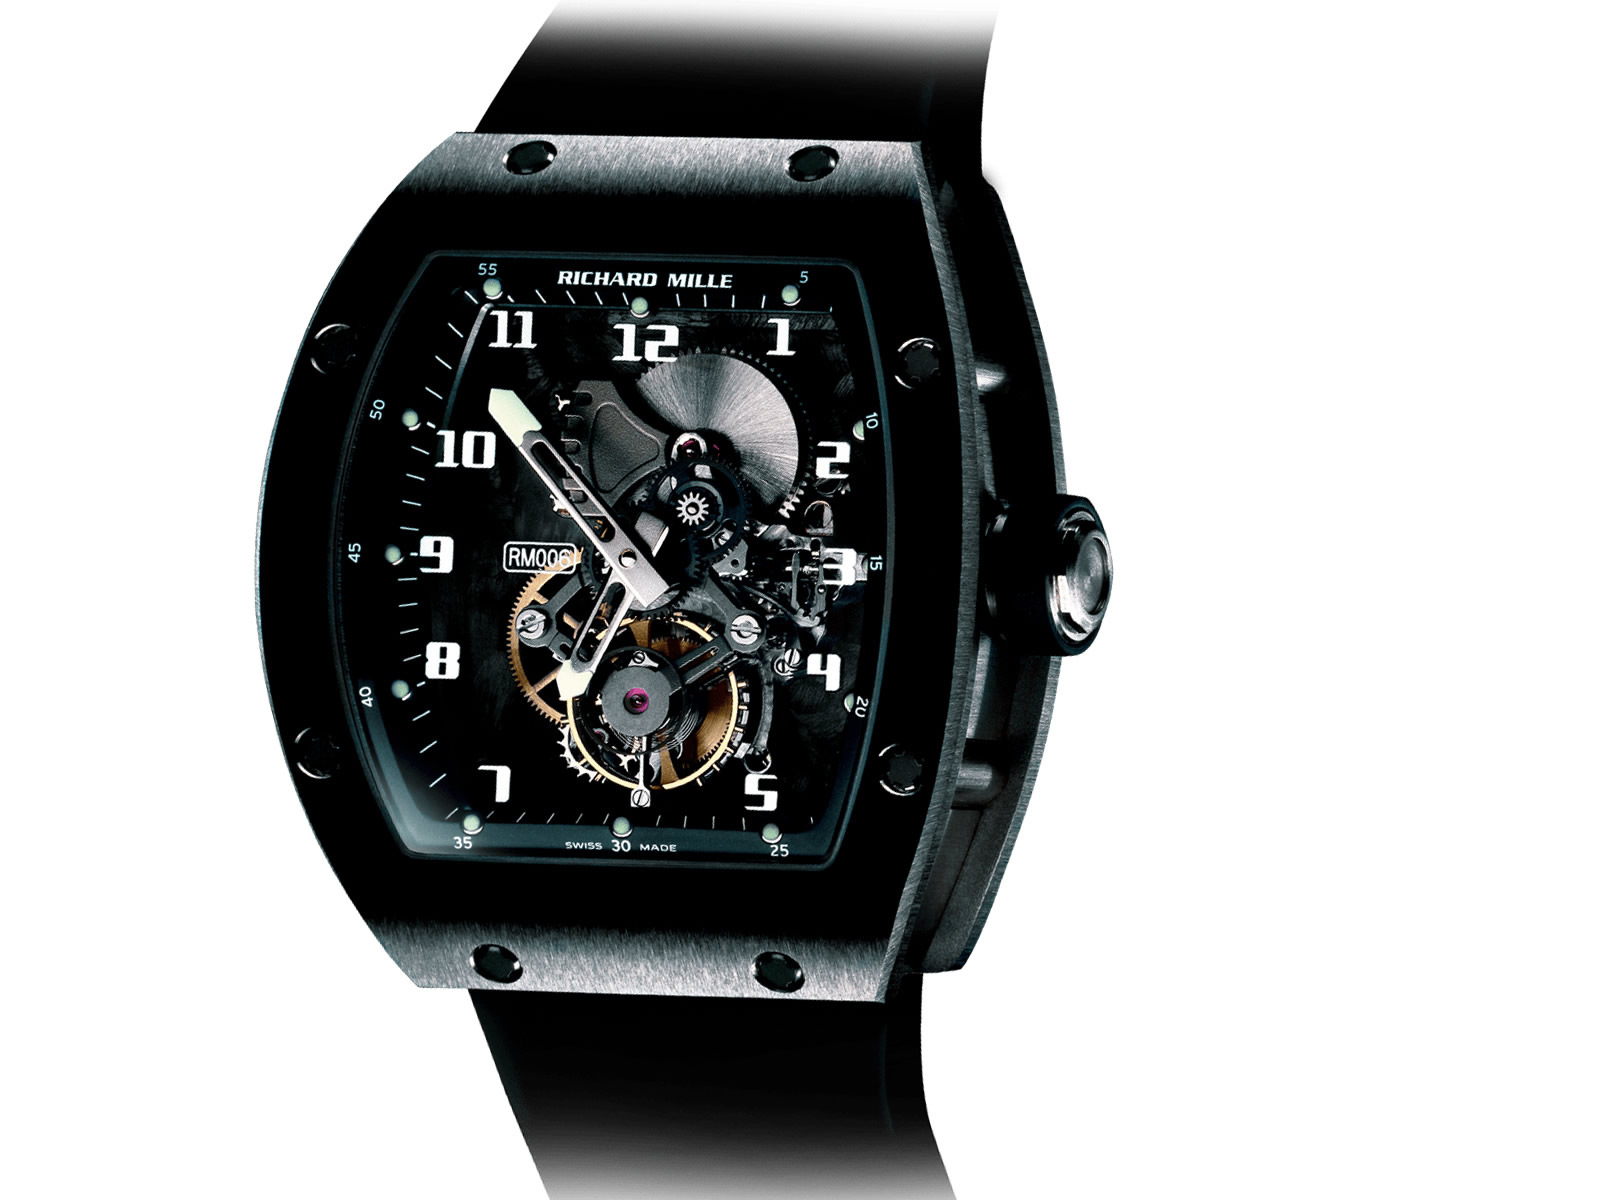 richard-mille-rm-006-tourbillon-felipe-massa-1-.jpg